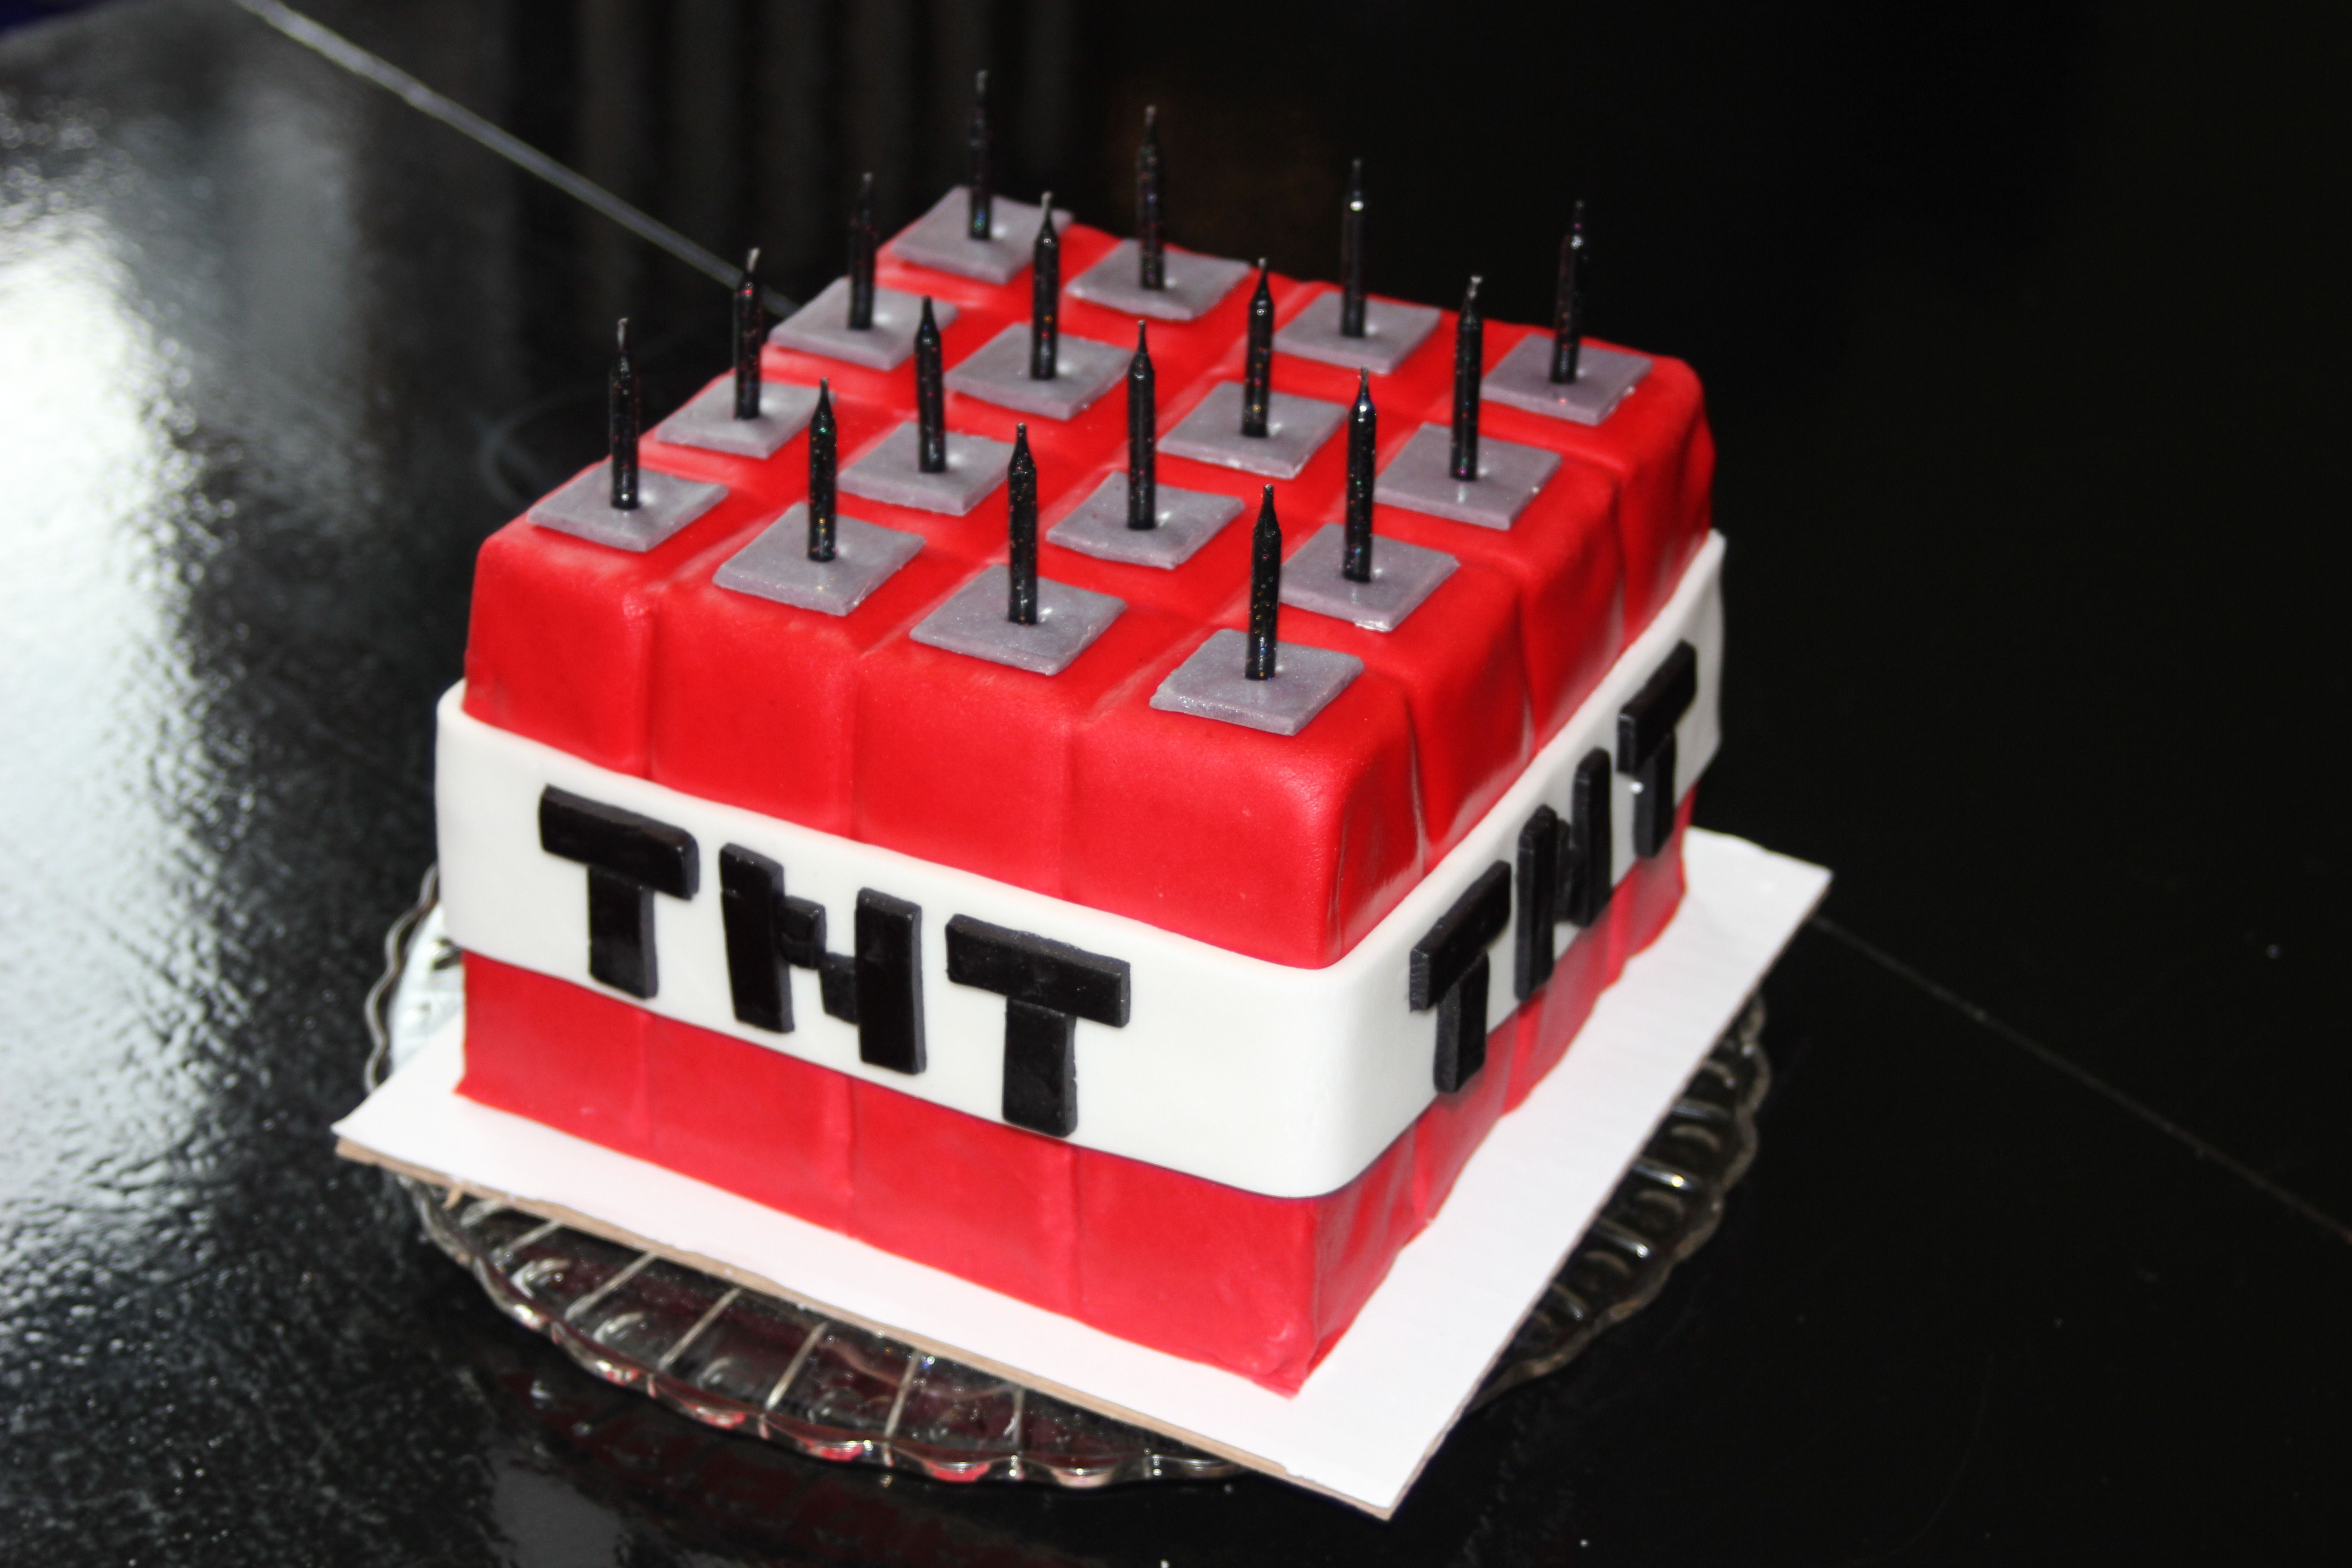 Tnt Minecraft Cake With Images Minecraft Cake Birthday Party